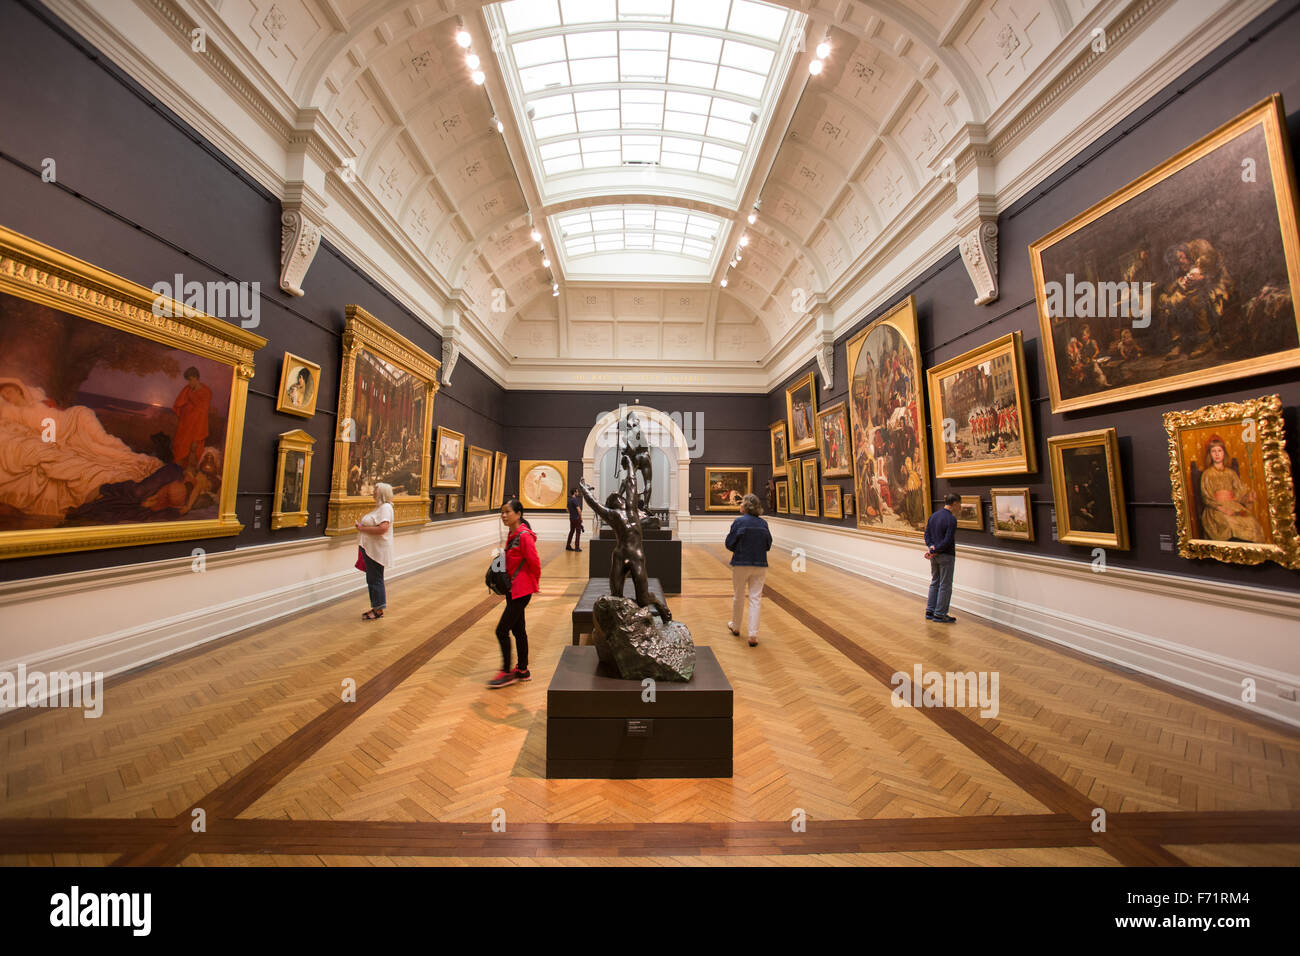 sydney art gallery of new south wales - Stock Image